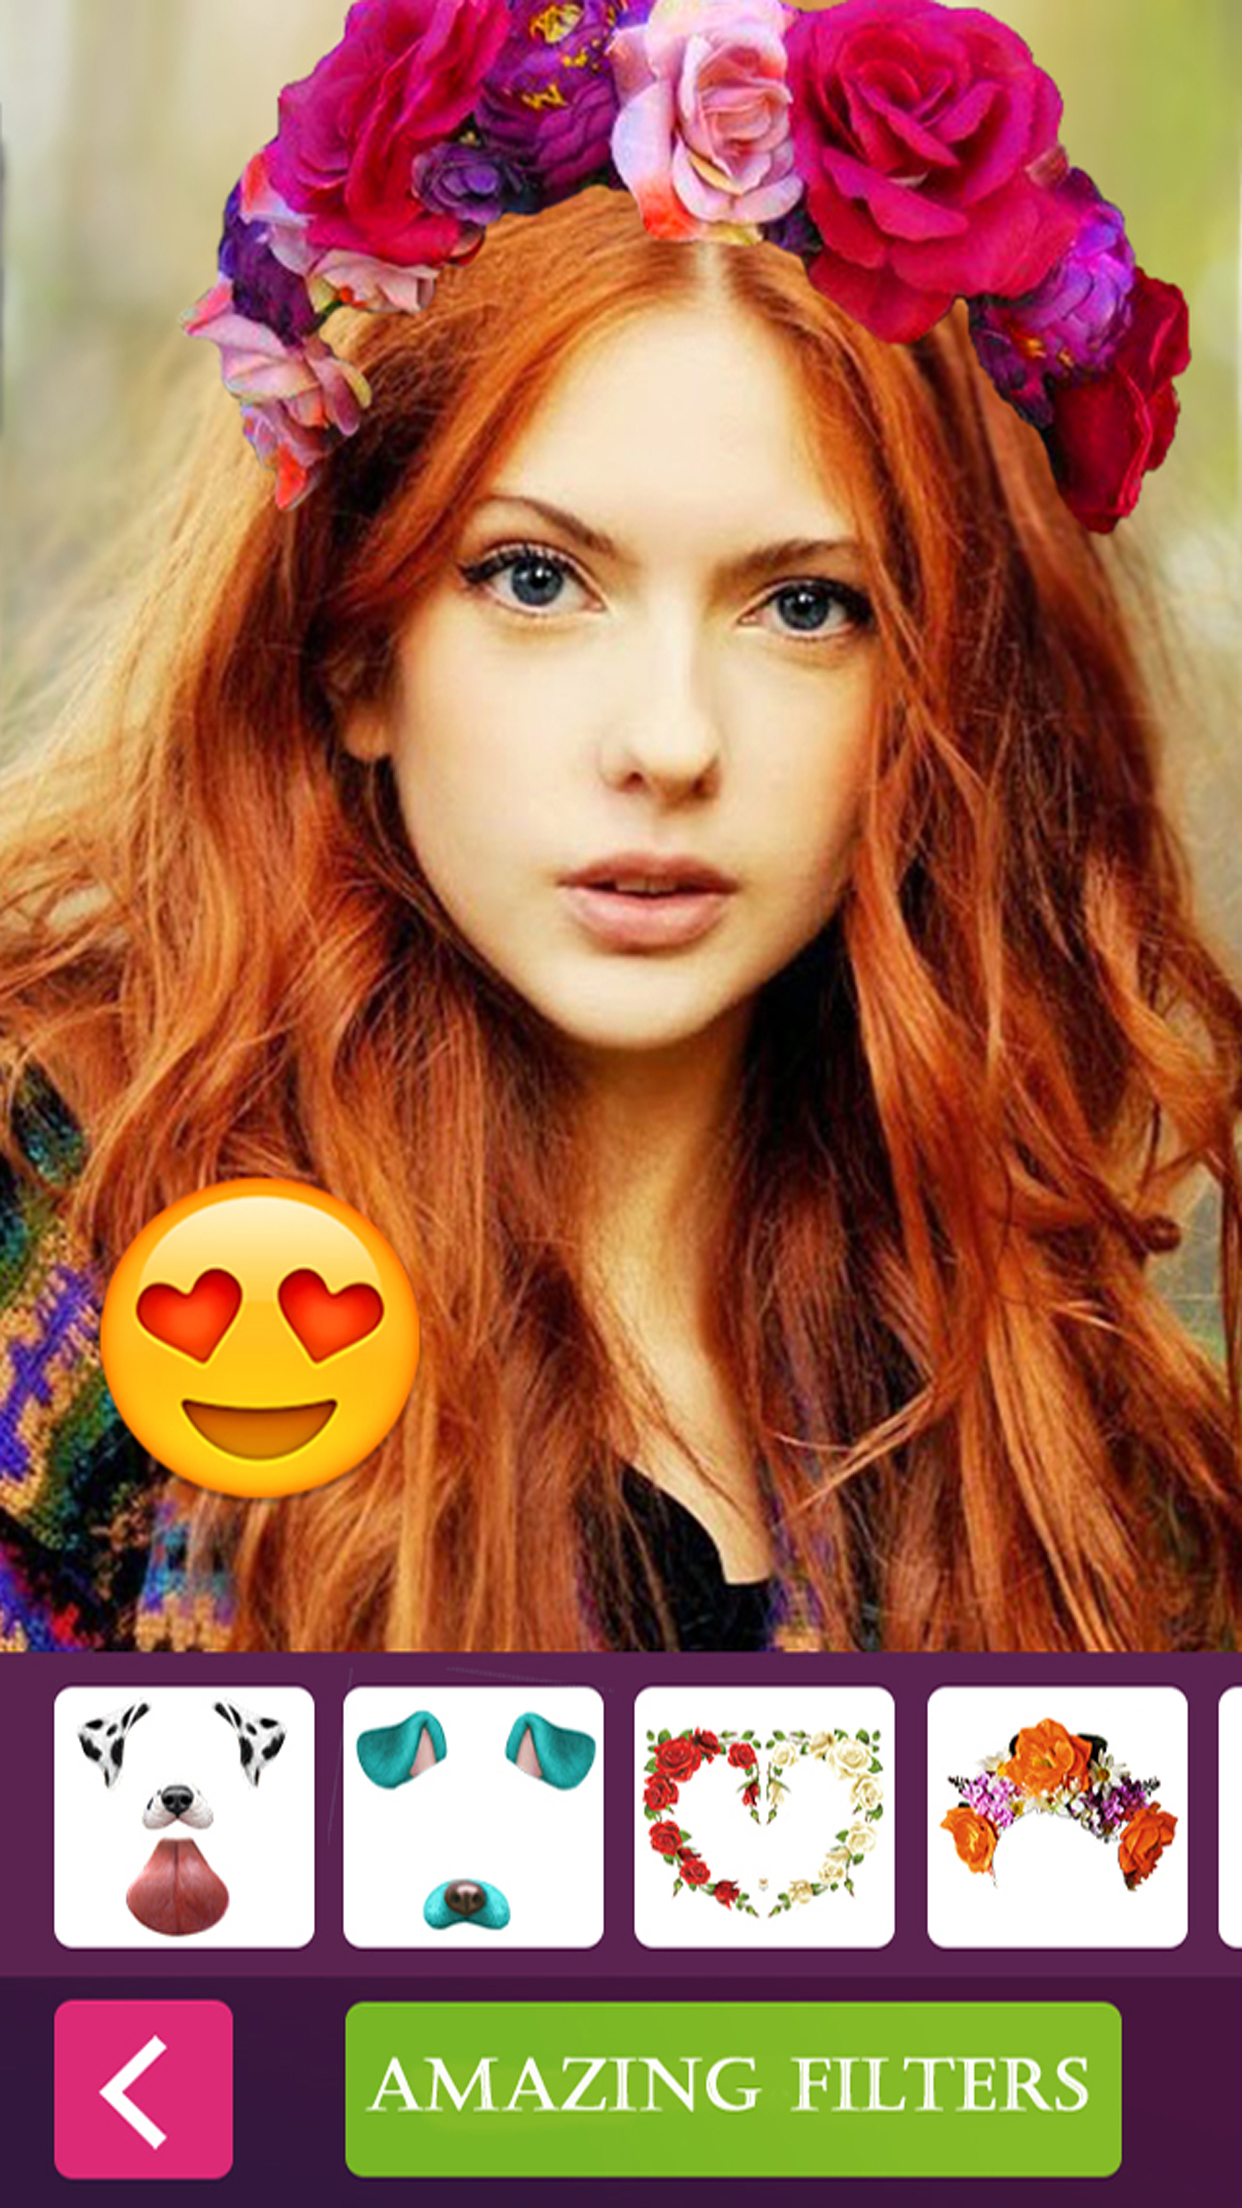 Flower crown photo collage editor for snapchat aso report and flower crown photo collage editor for snapchat screenshot izmirmasajfo Gallery